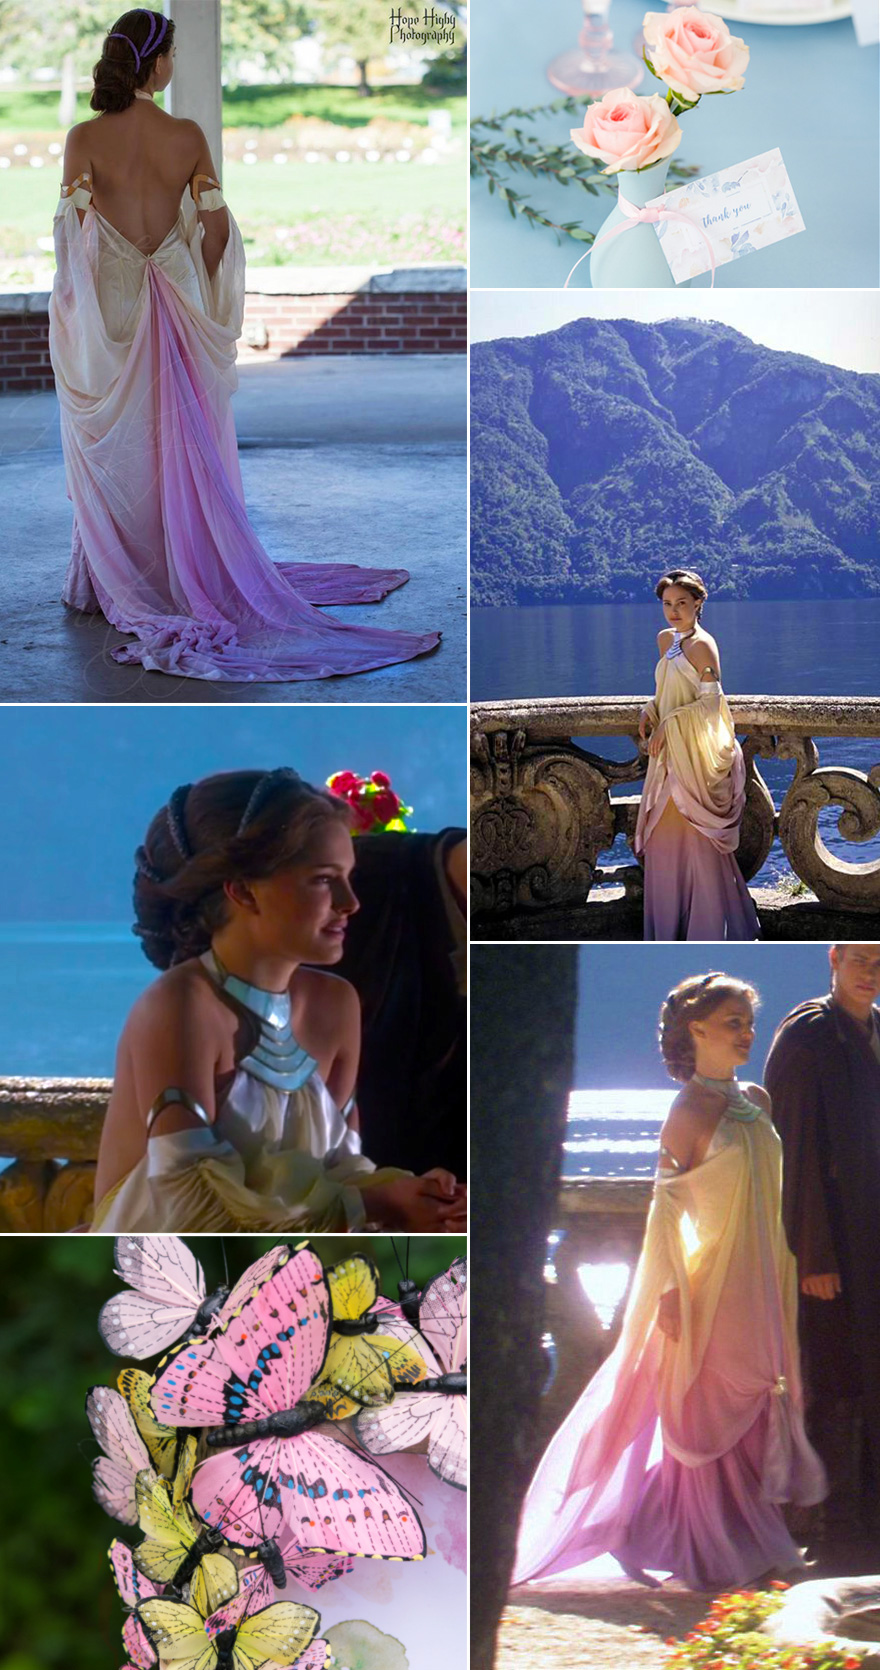 Padme Amidala Rainbow Dress - Padme's Naboo Lake Colourful Dress - Padme Amidala Lake Gown Cosplay from Star Wars Episode II: Attack of the Clones by FabricPuddles on Etsy | Confetti.co.uk